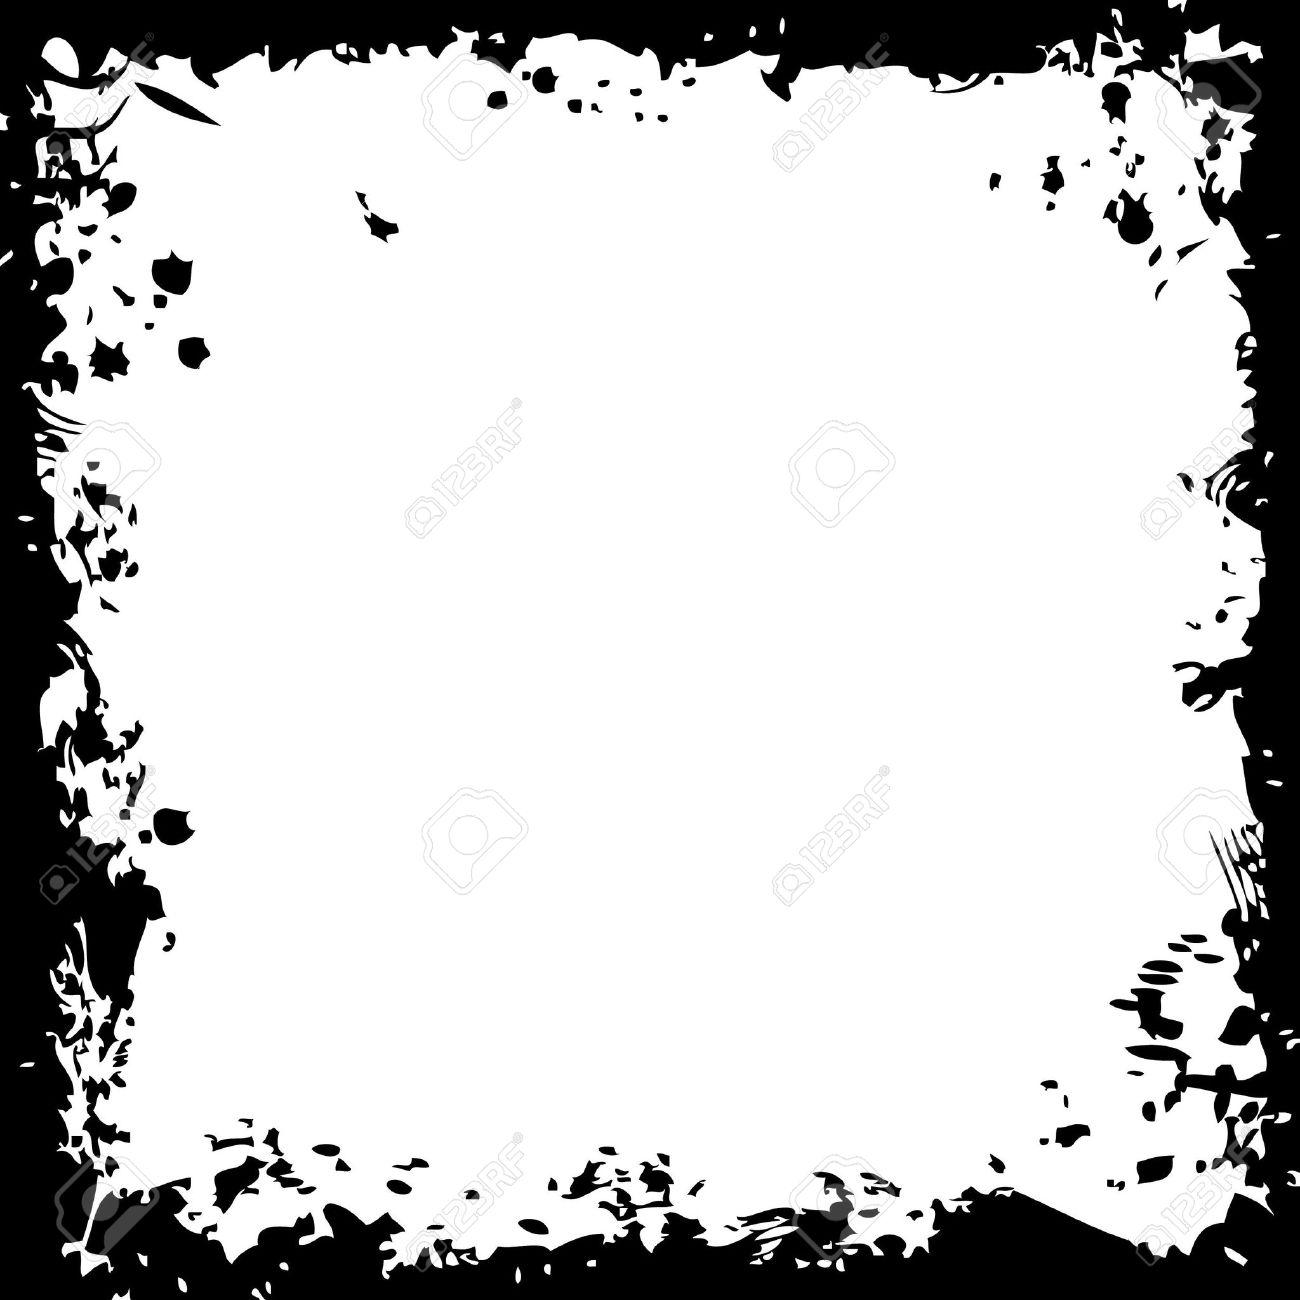 Square Border - A Grunge Square Border In Black And White Stock Photo, Picture And ...